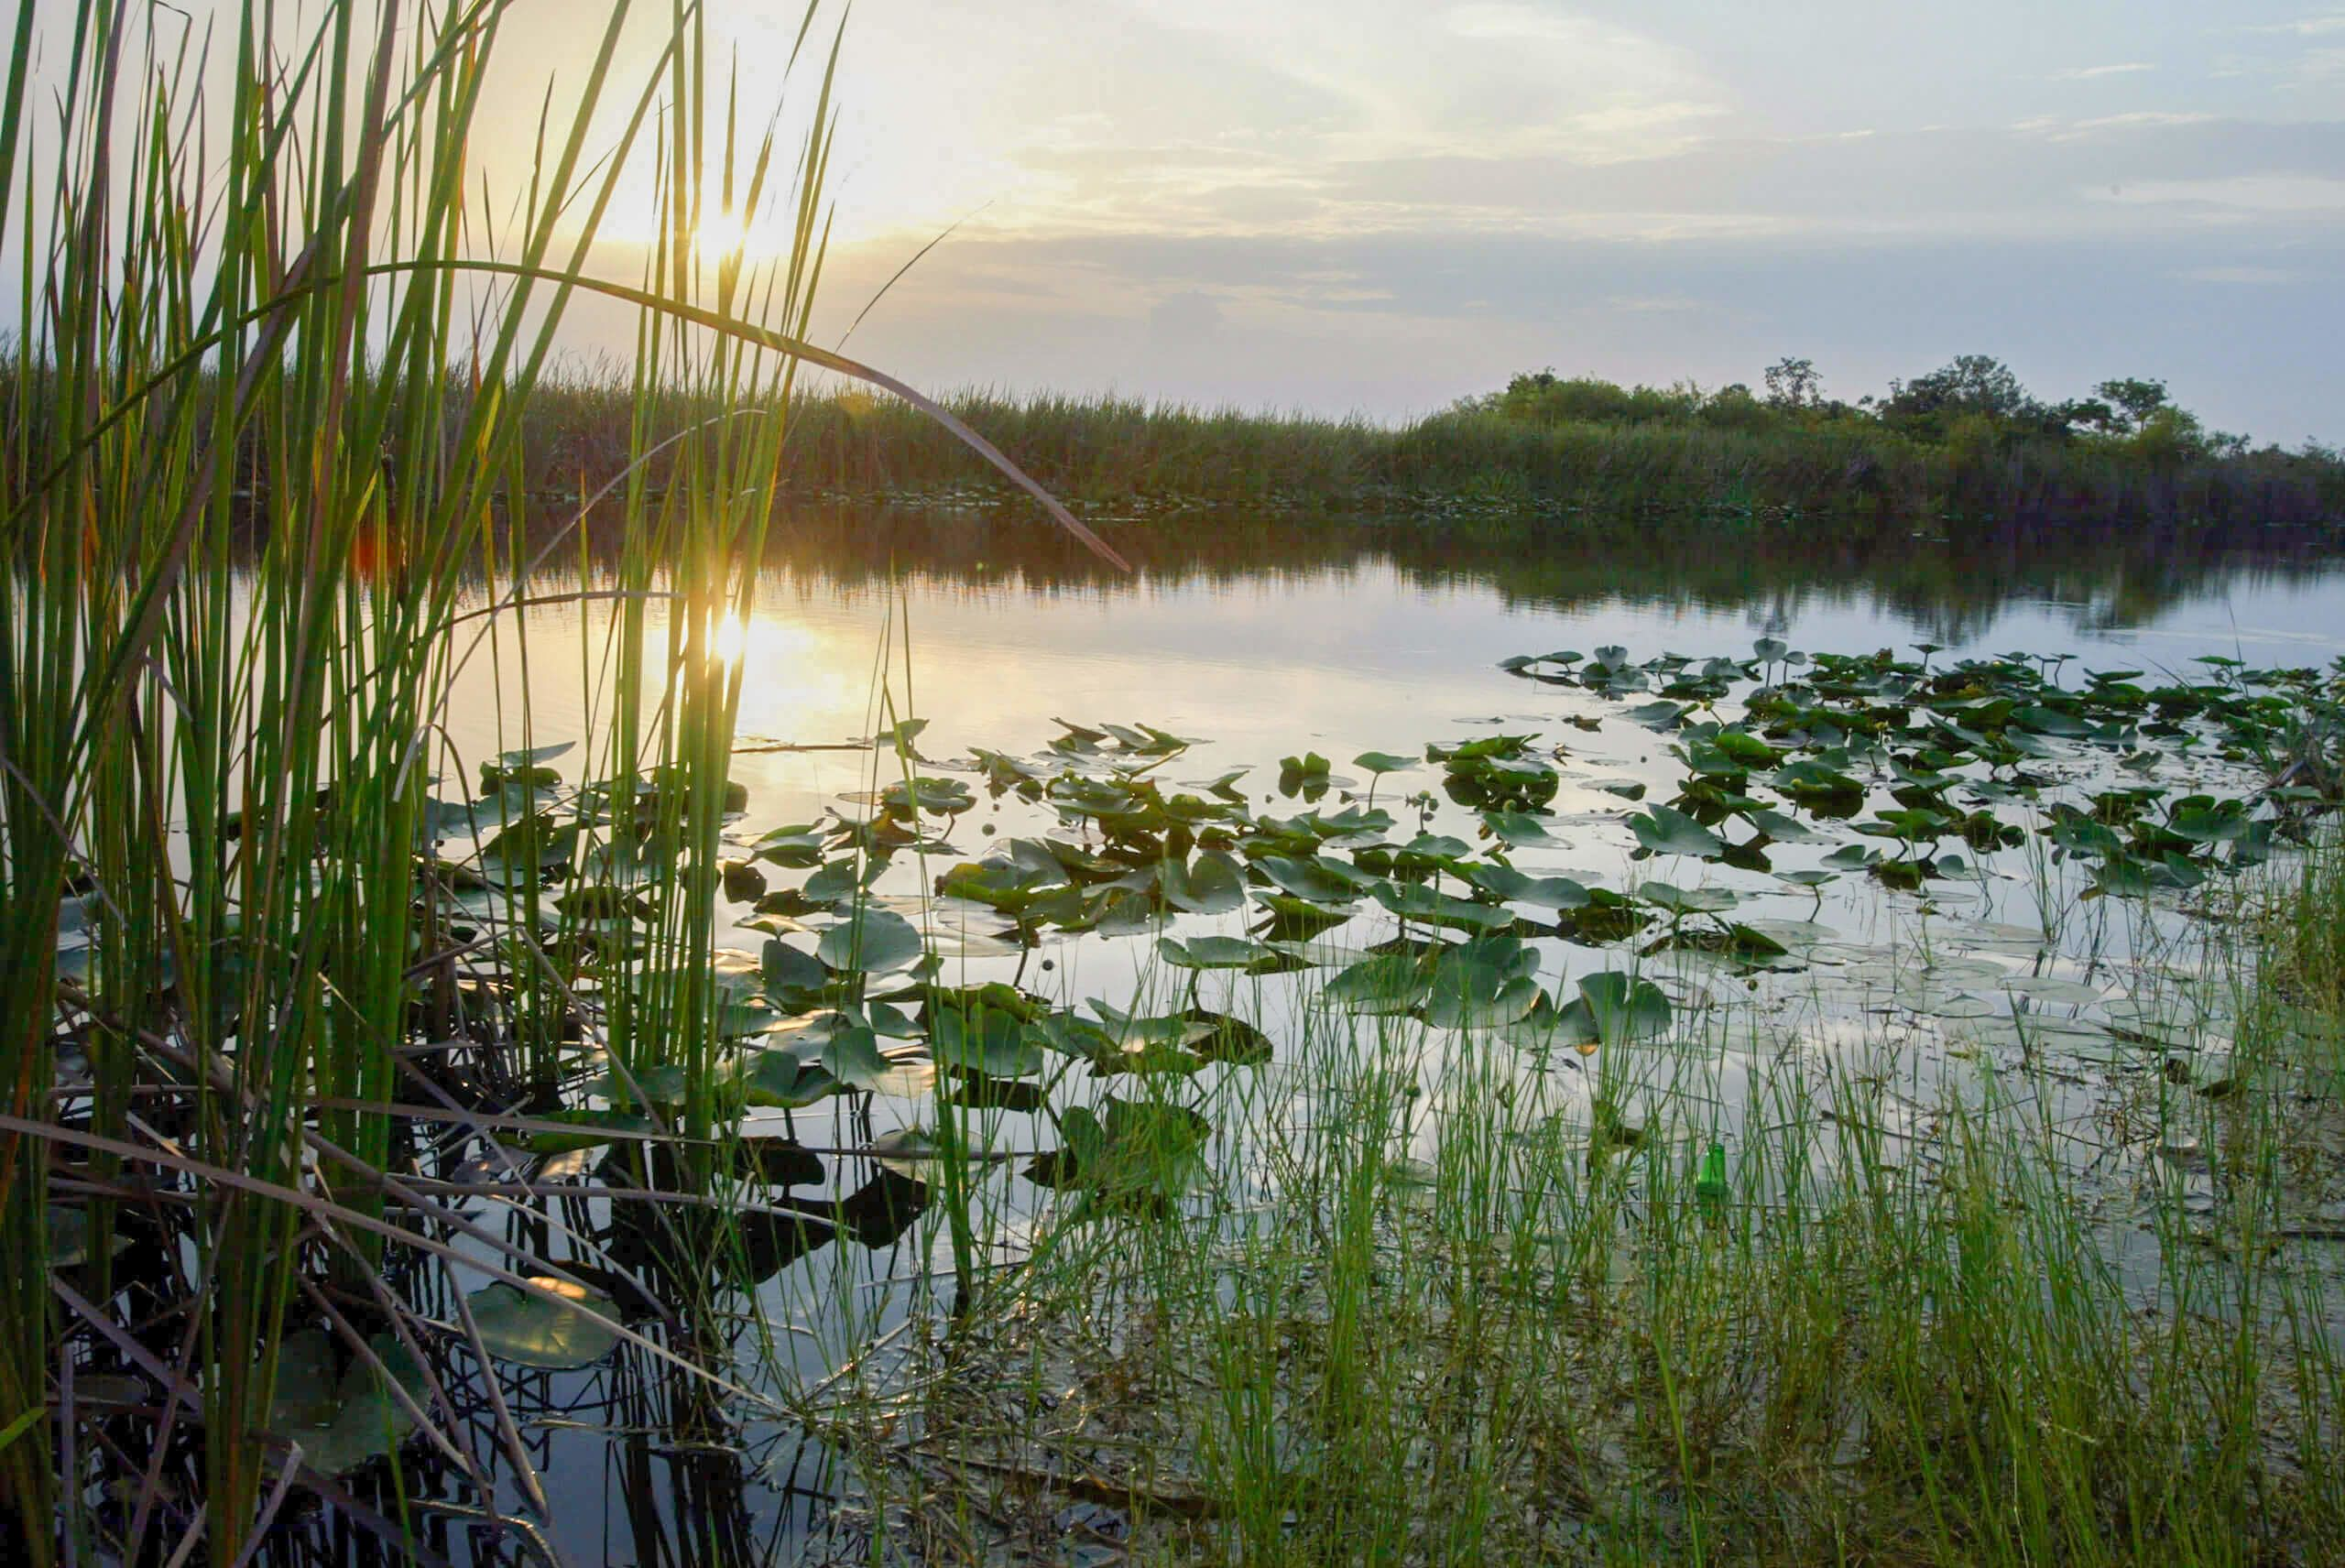 Everglades play a key role in keeping Miami liveable.